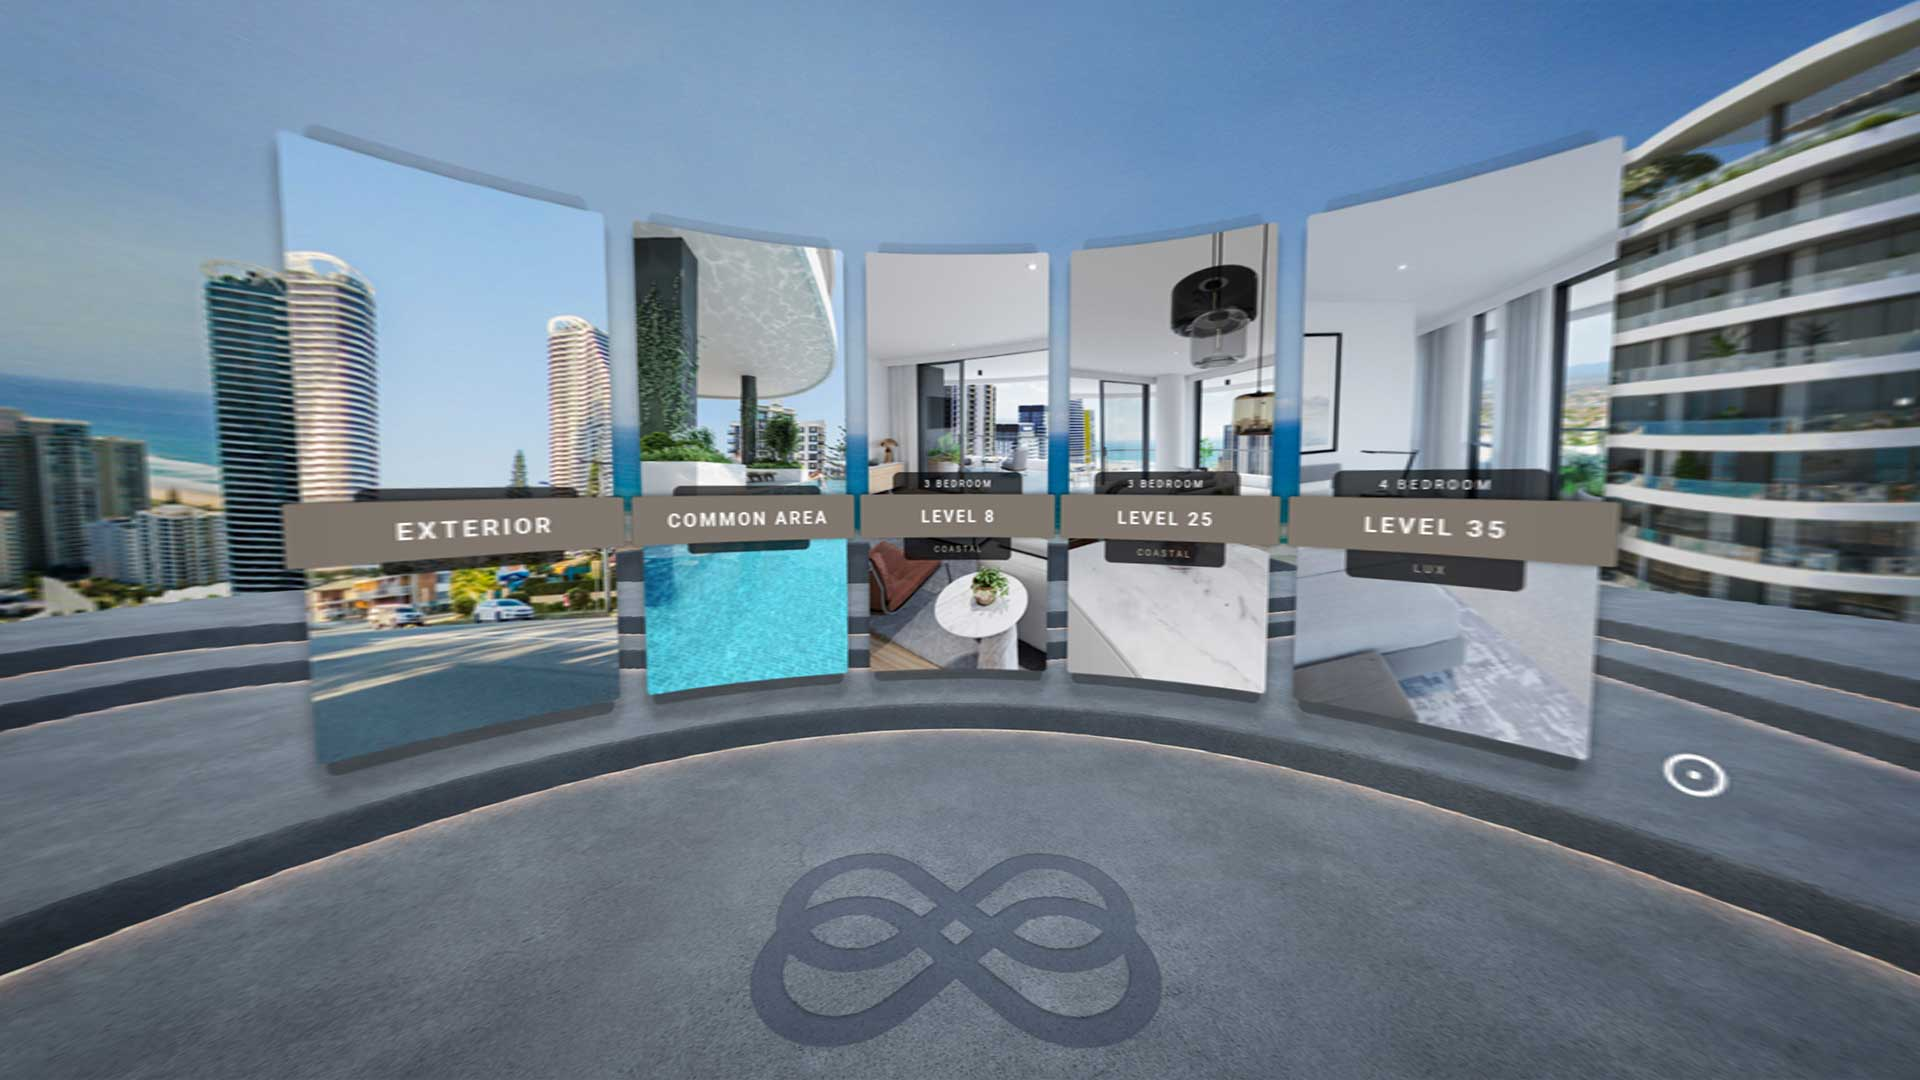 Real Estate VR Image of Infinity by Start Beyond 01